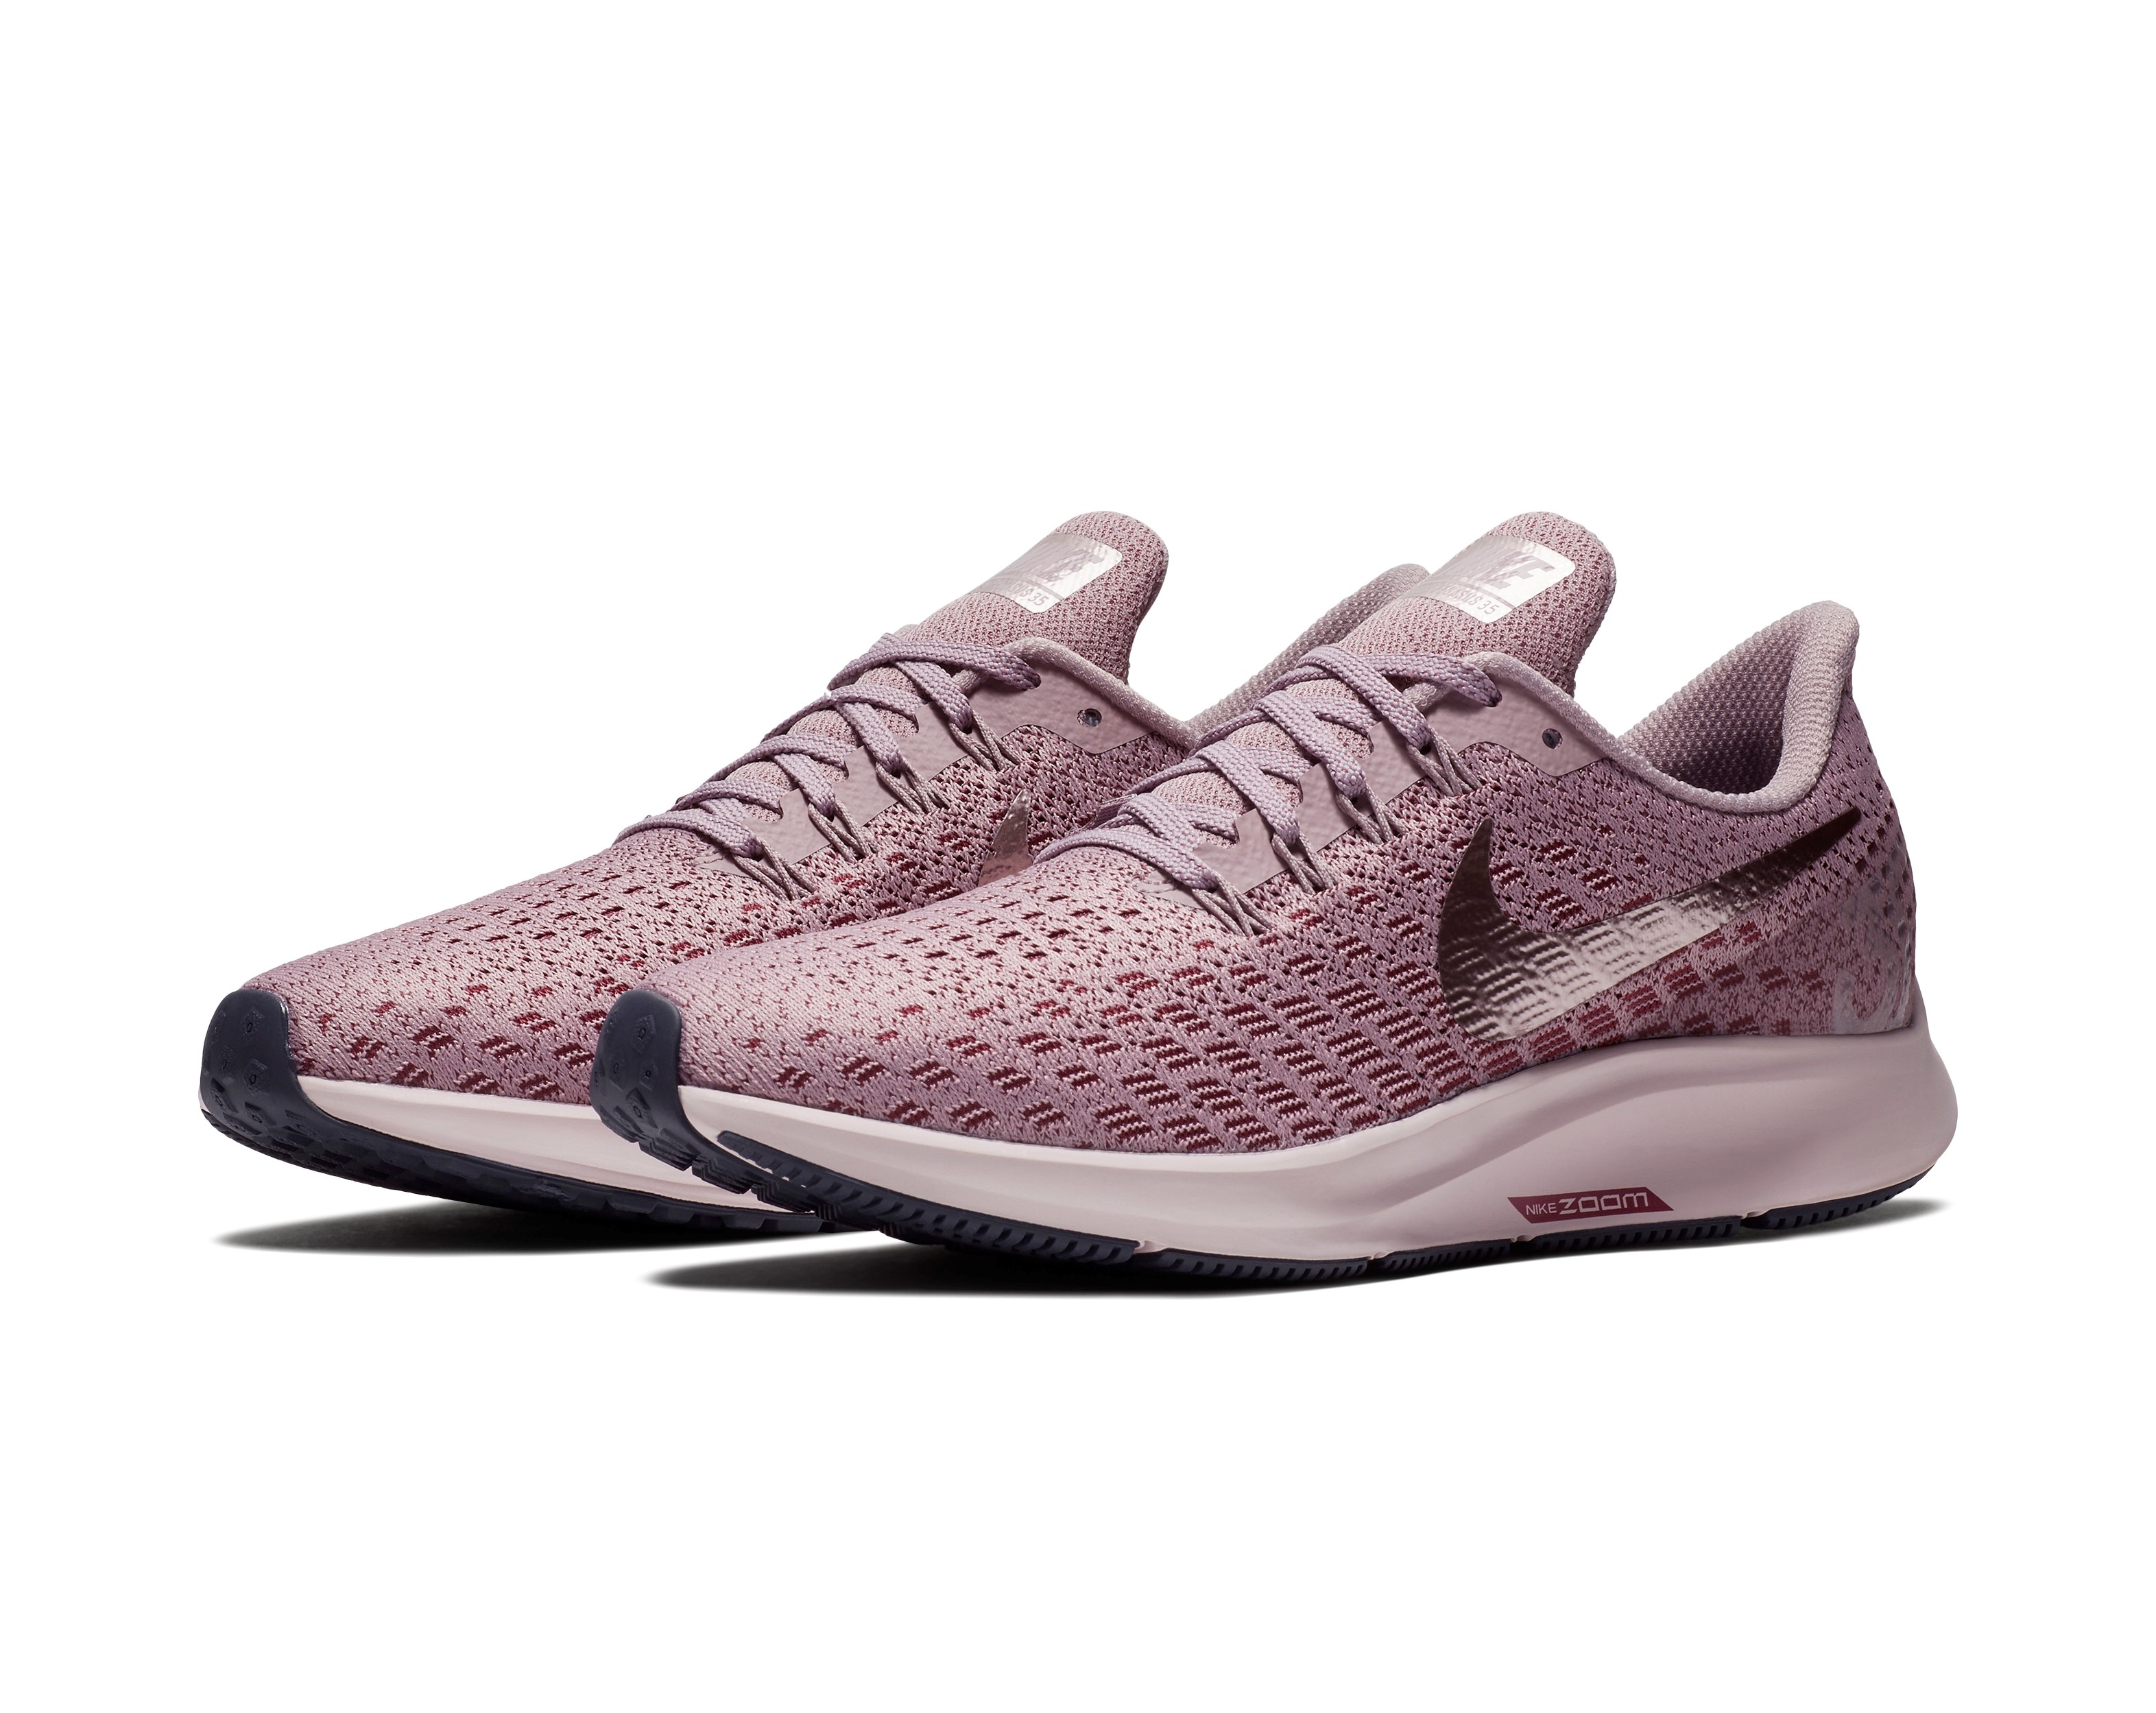 timeless design quite nice big sale The Nike Air Zoom Pegasus 35 Uses New Cushioning Inspired by ...